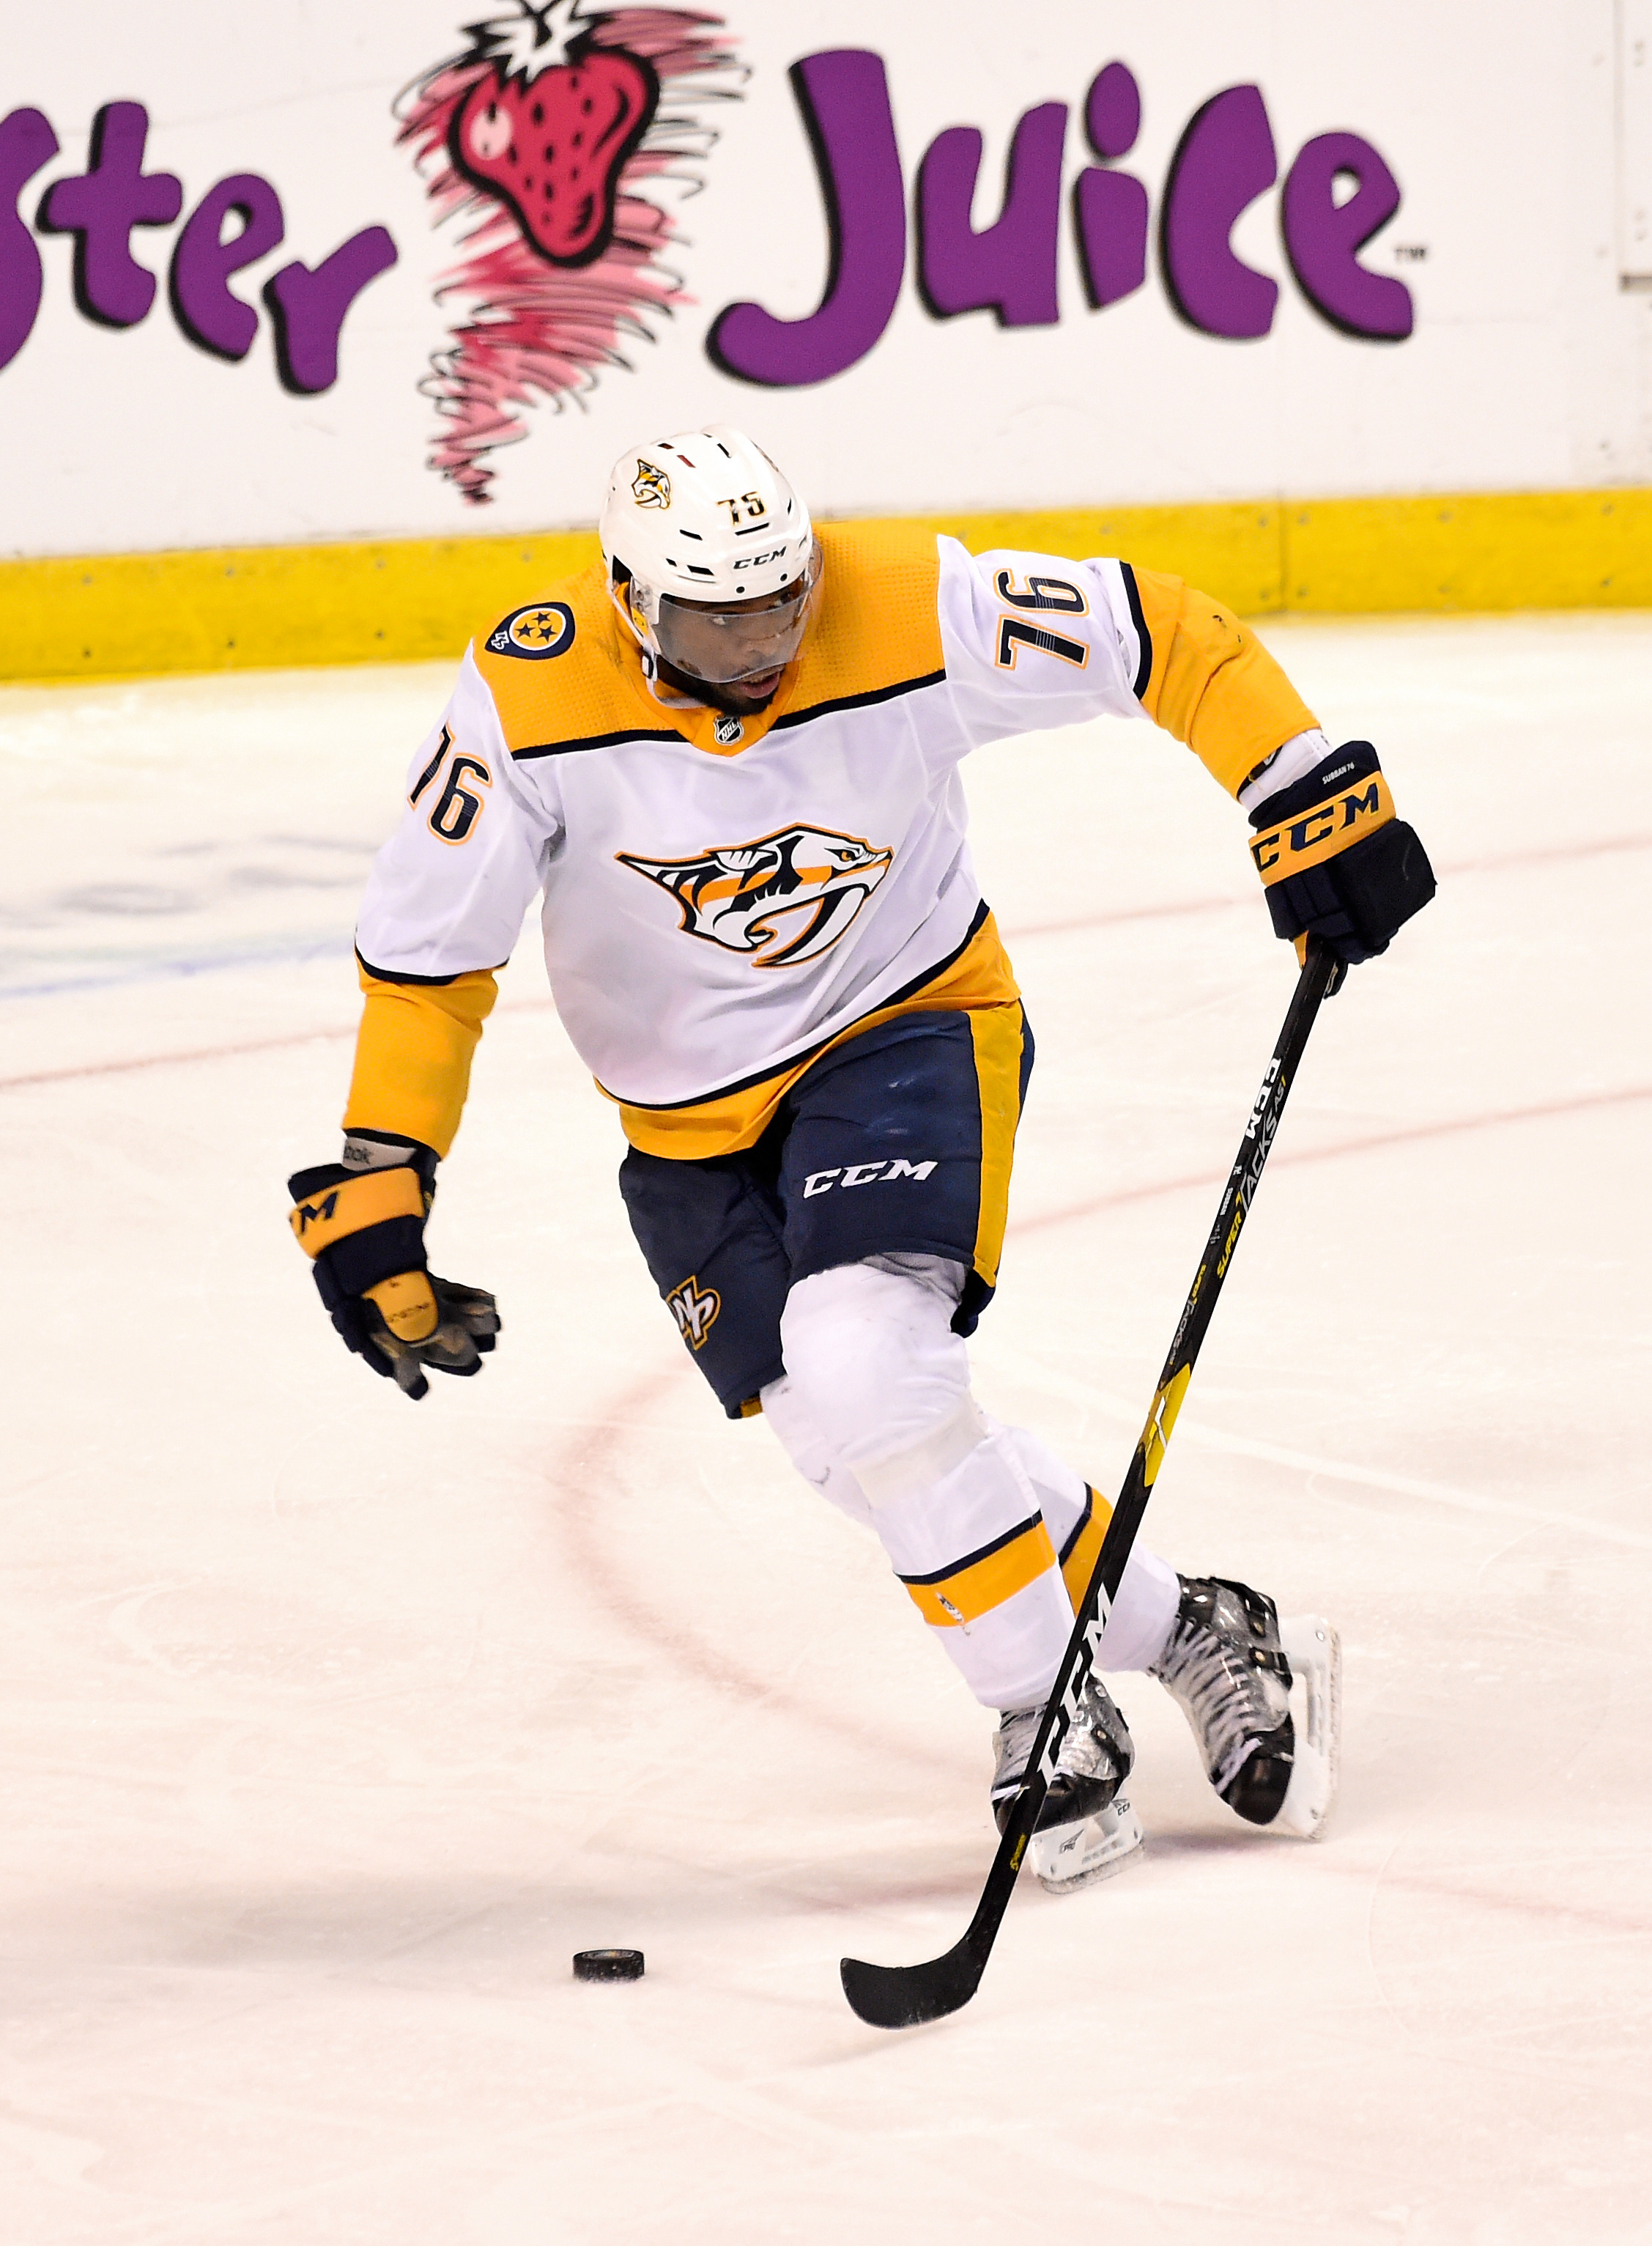 separation shoes 61bc3 98dca New Jersey Devils Acquire P.K. Subban | Pro Hockey Rumors